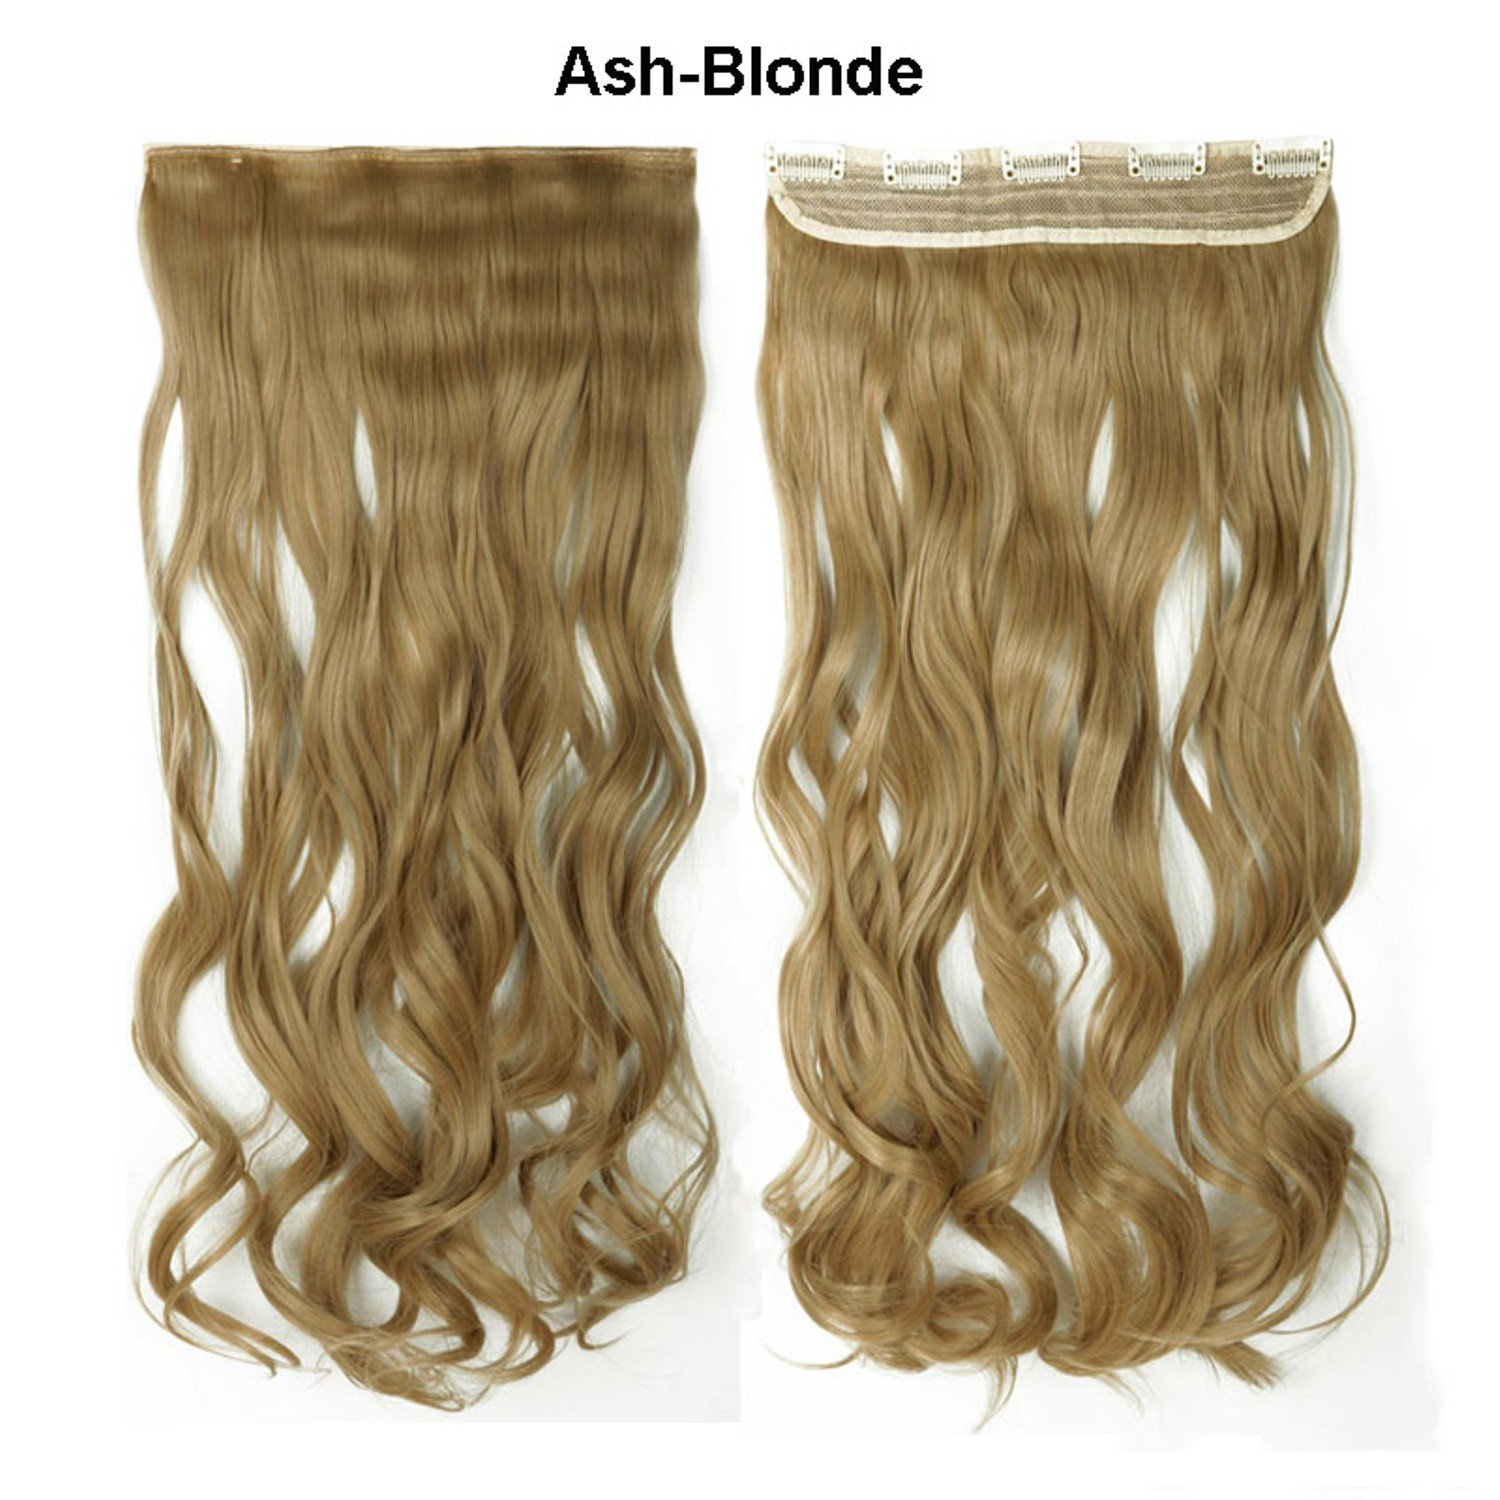 24 Inches Fine Quality Ash Blond Long Curly Synthetic Real As Human